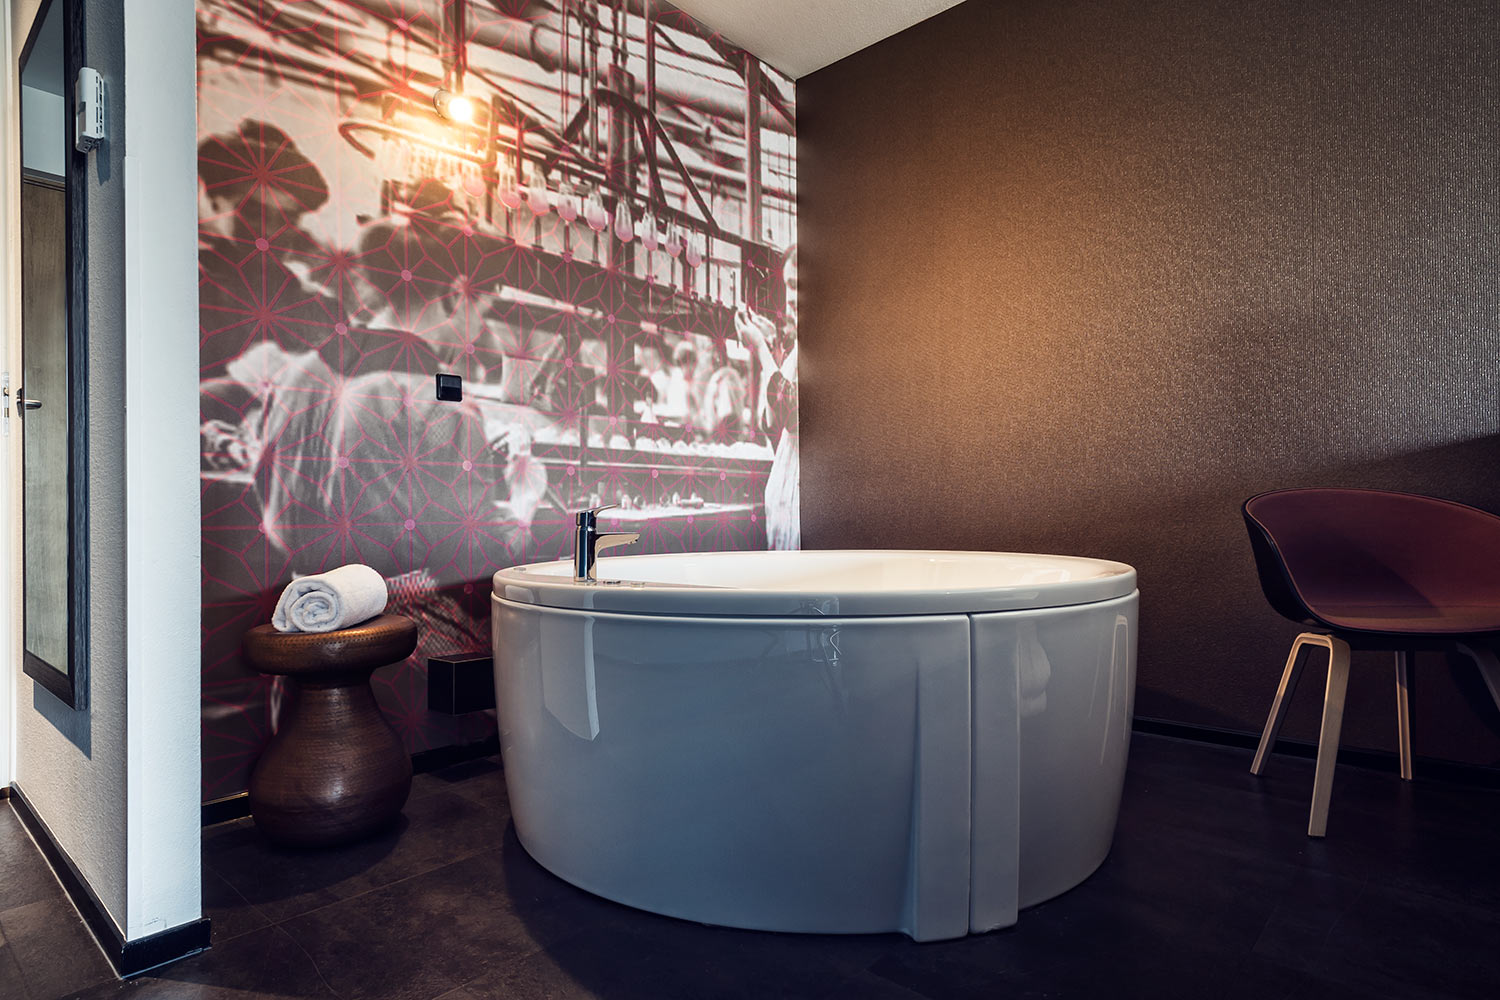 Inntel Hotels Art Eindhoven - Art Whirlpool Room bath